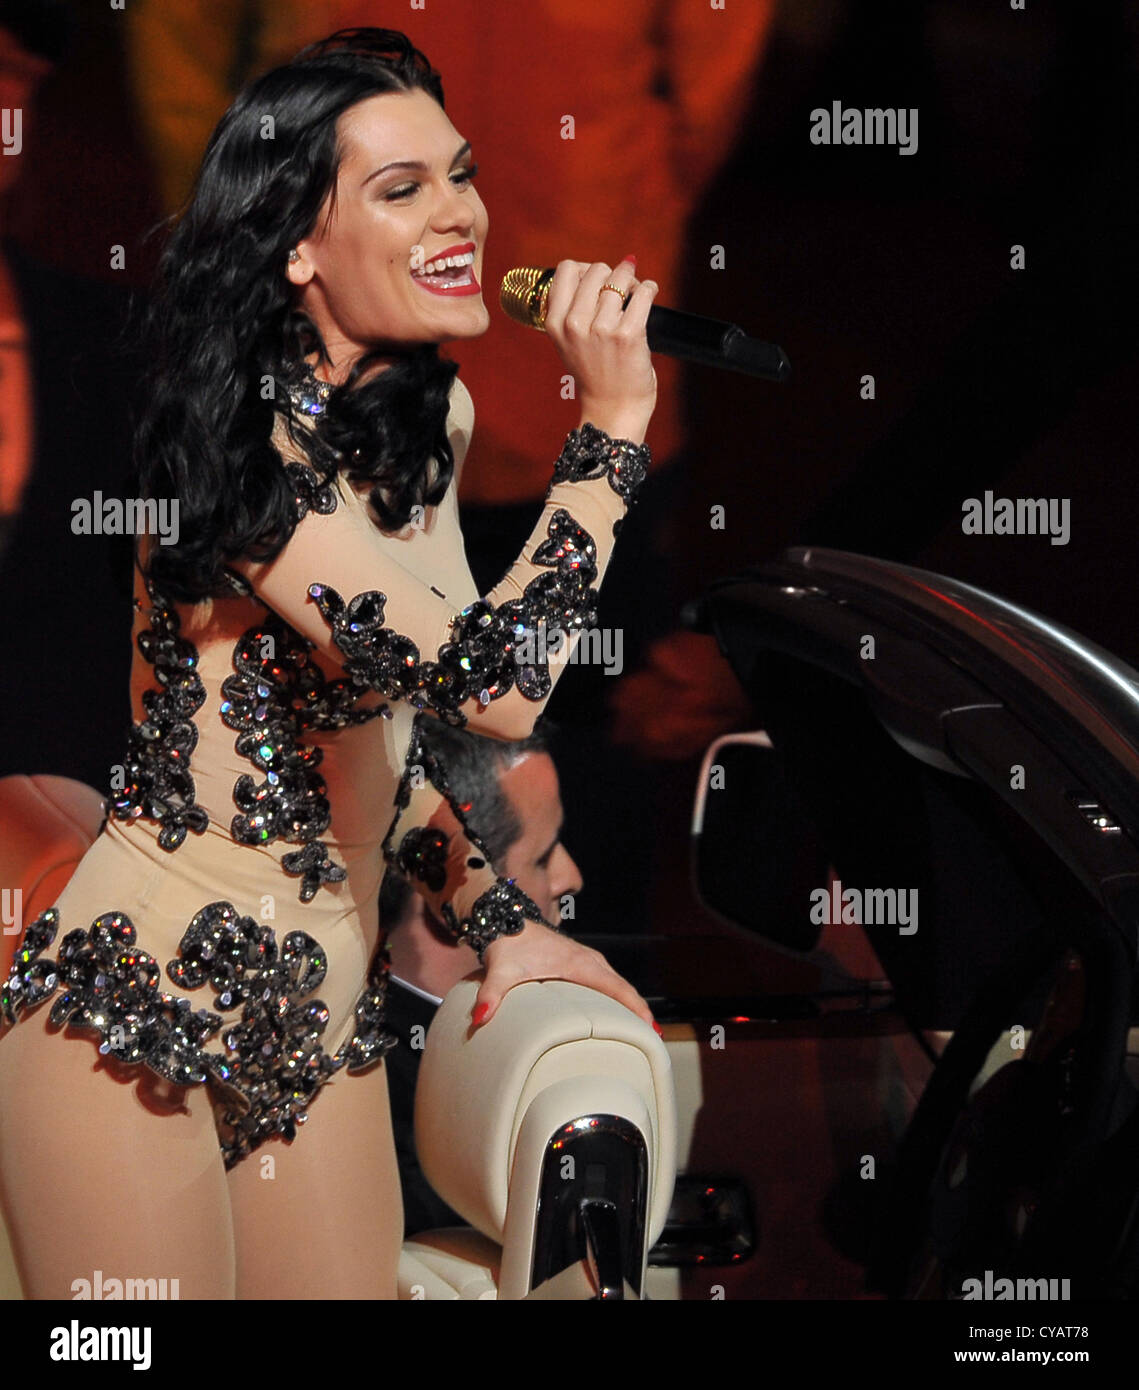 Jessie J performs at the London 2012 Olympic closing ceremony - Stock Image